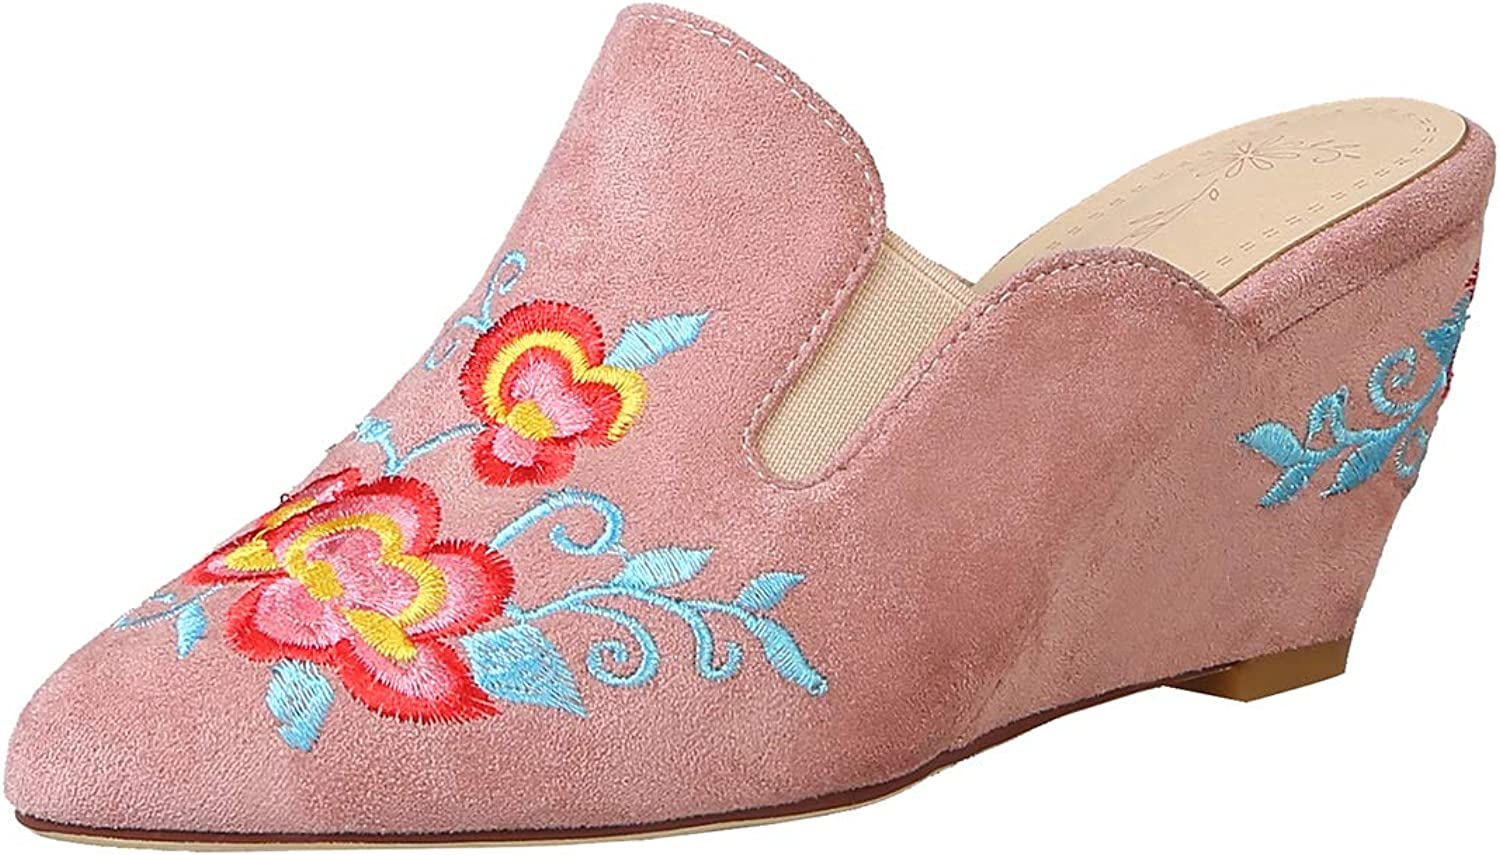 Artfaerie Womens Embroidery Clogs Mules Wedge Heel Slippers Pointed Toe Floral Print Slingback Pumps